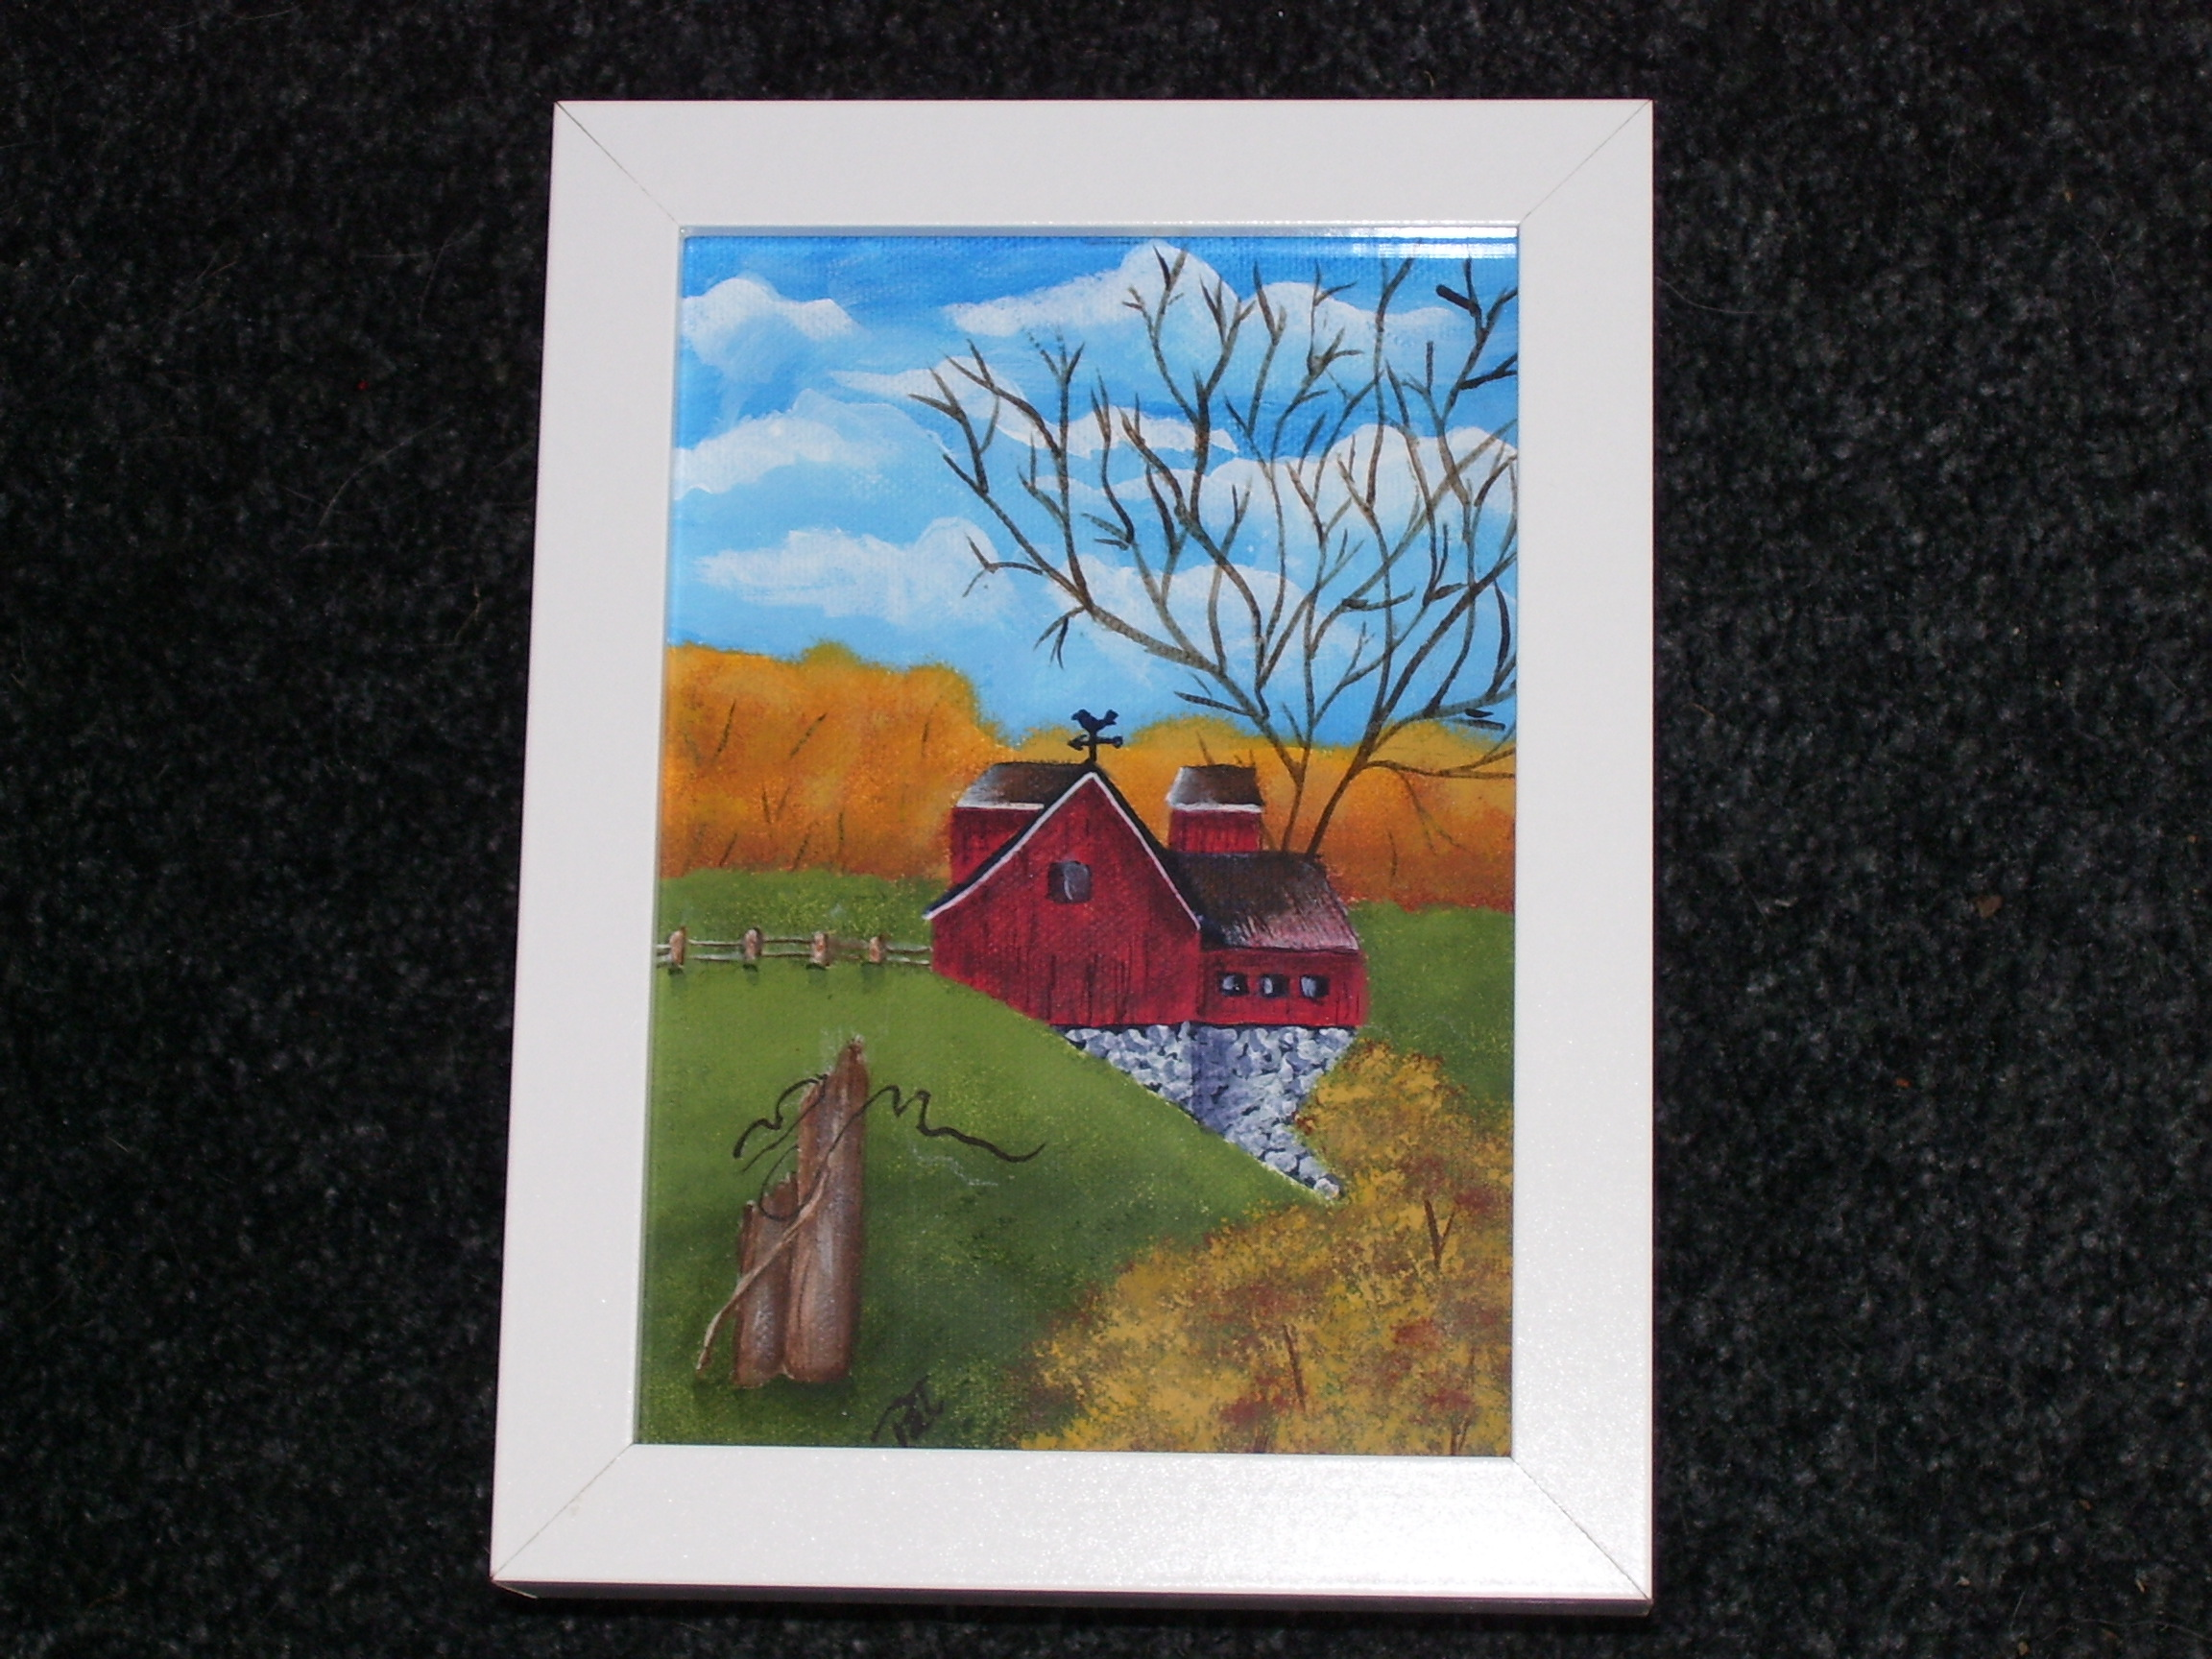 Framed painting of a red barn.